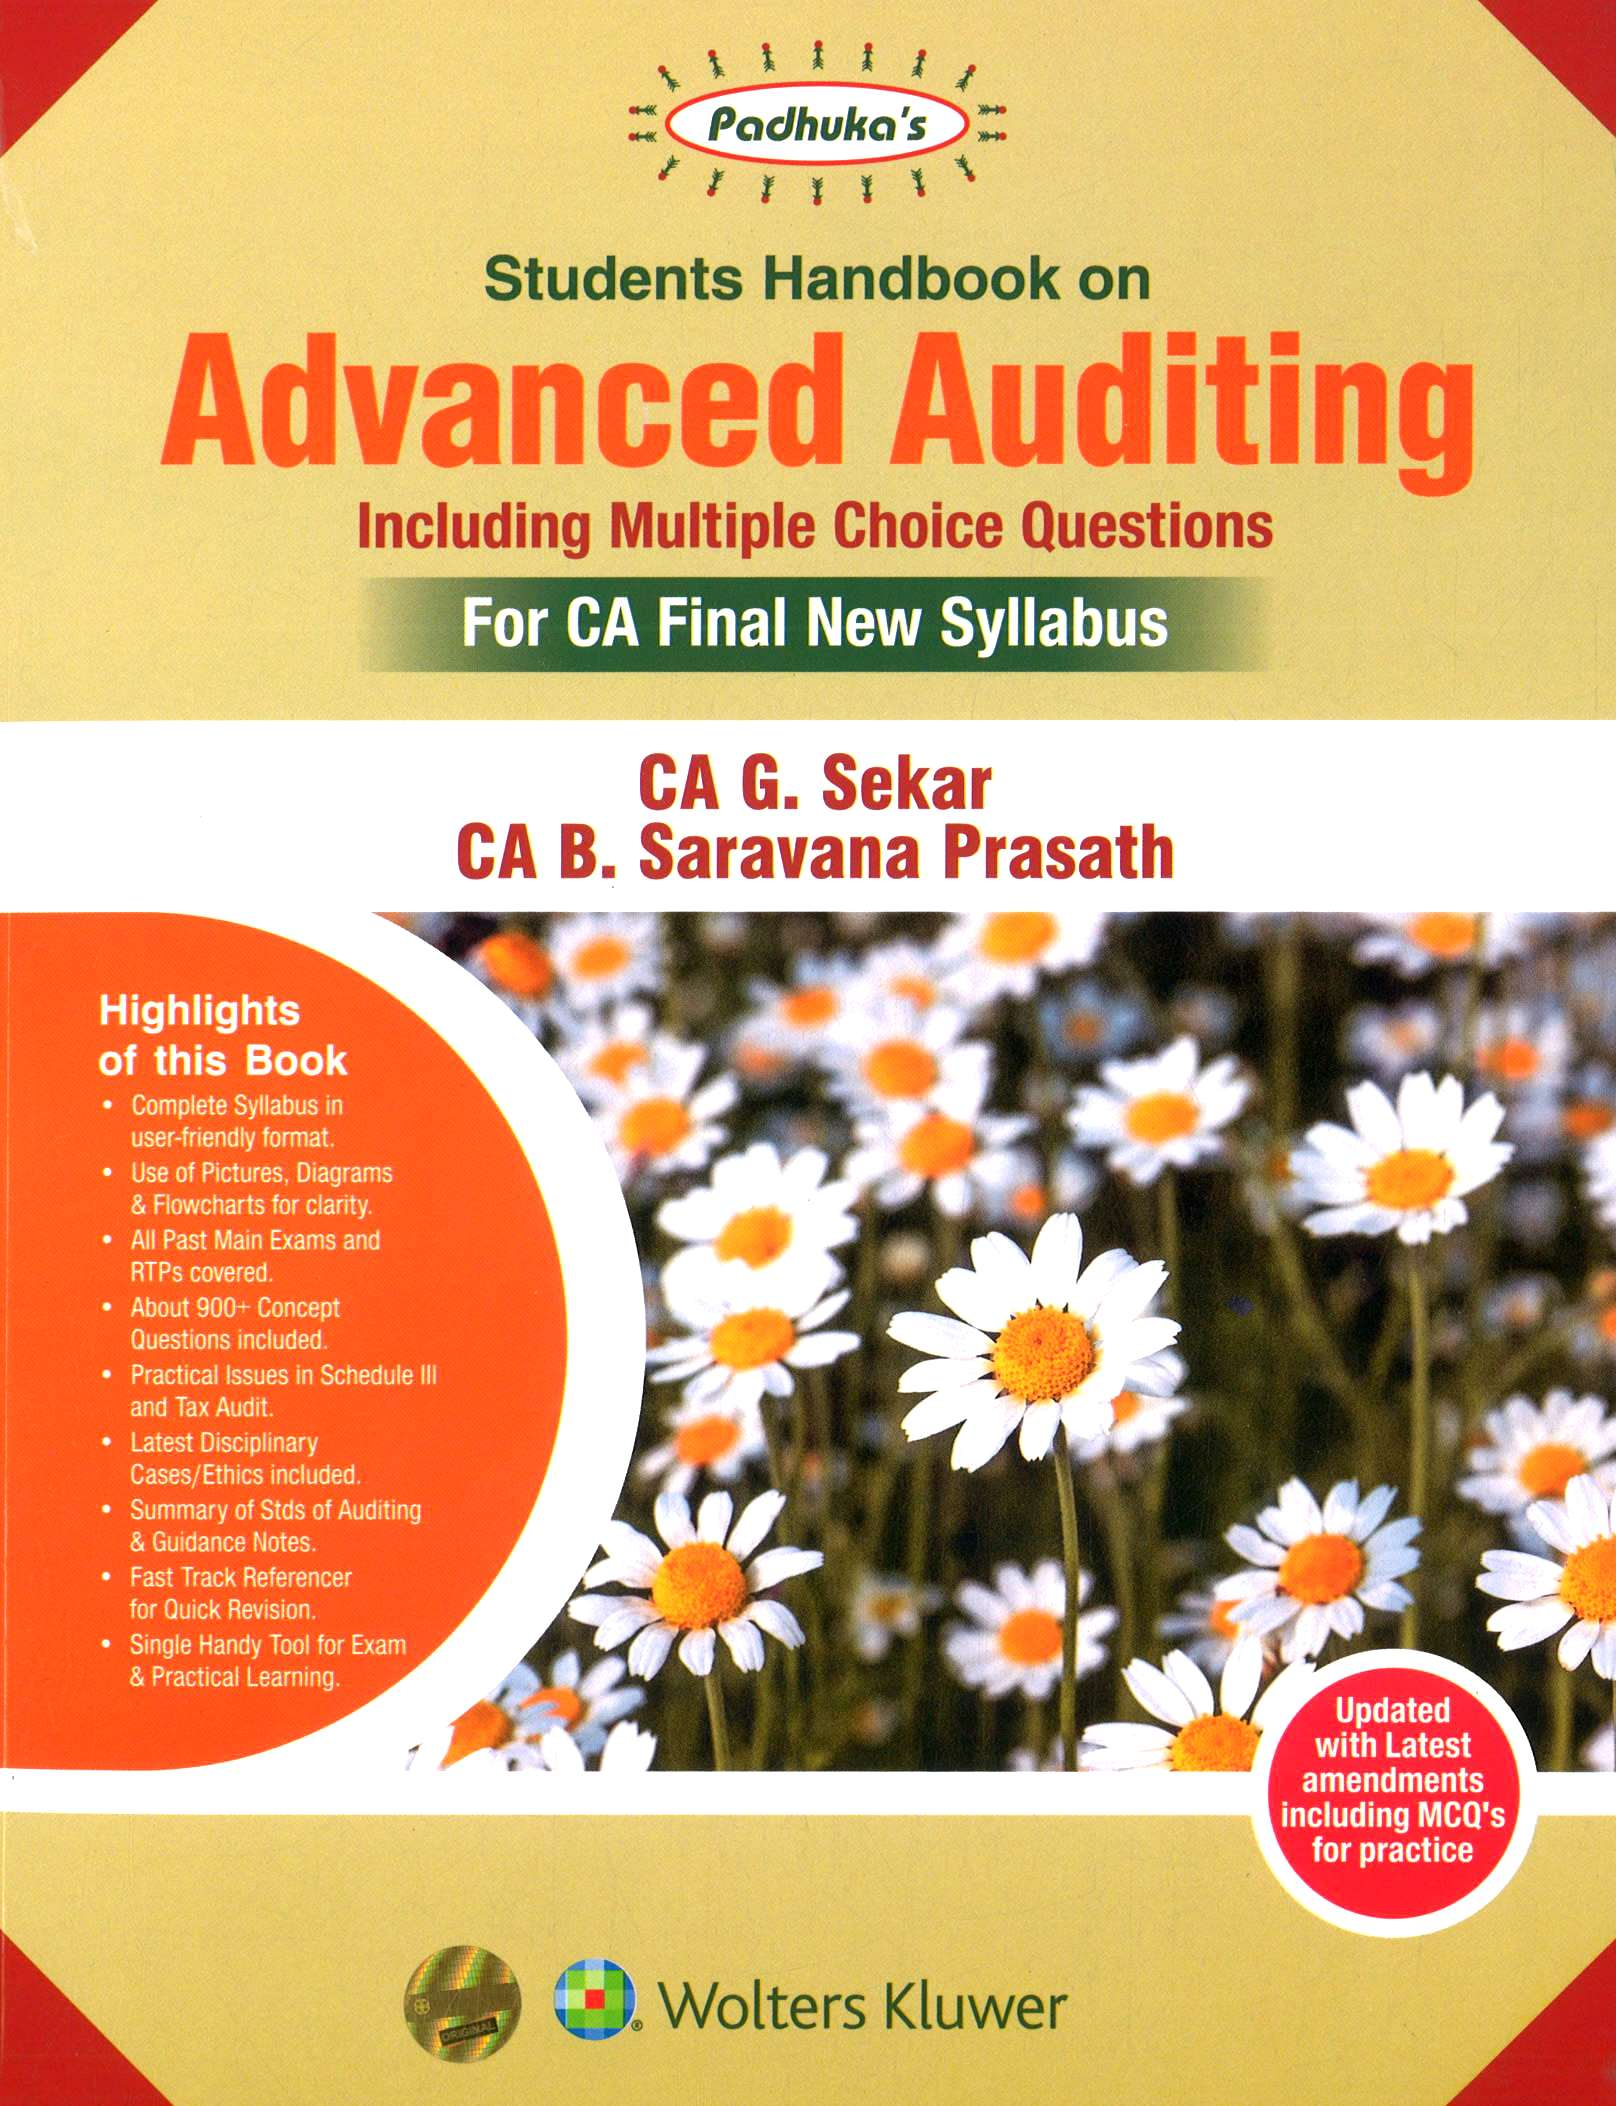 Padhuka's Student Handbook on Advanced Auditing CA Final (old Syllabus) for May 2020 exam by CA G. Sekar and CA B. Saravana Prasath (Wolters Kluwer Publishing)